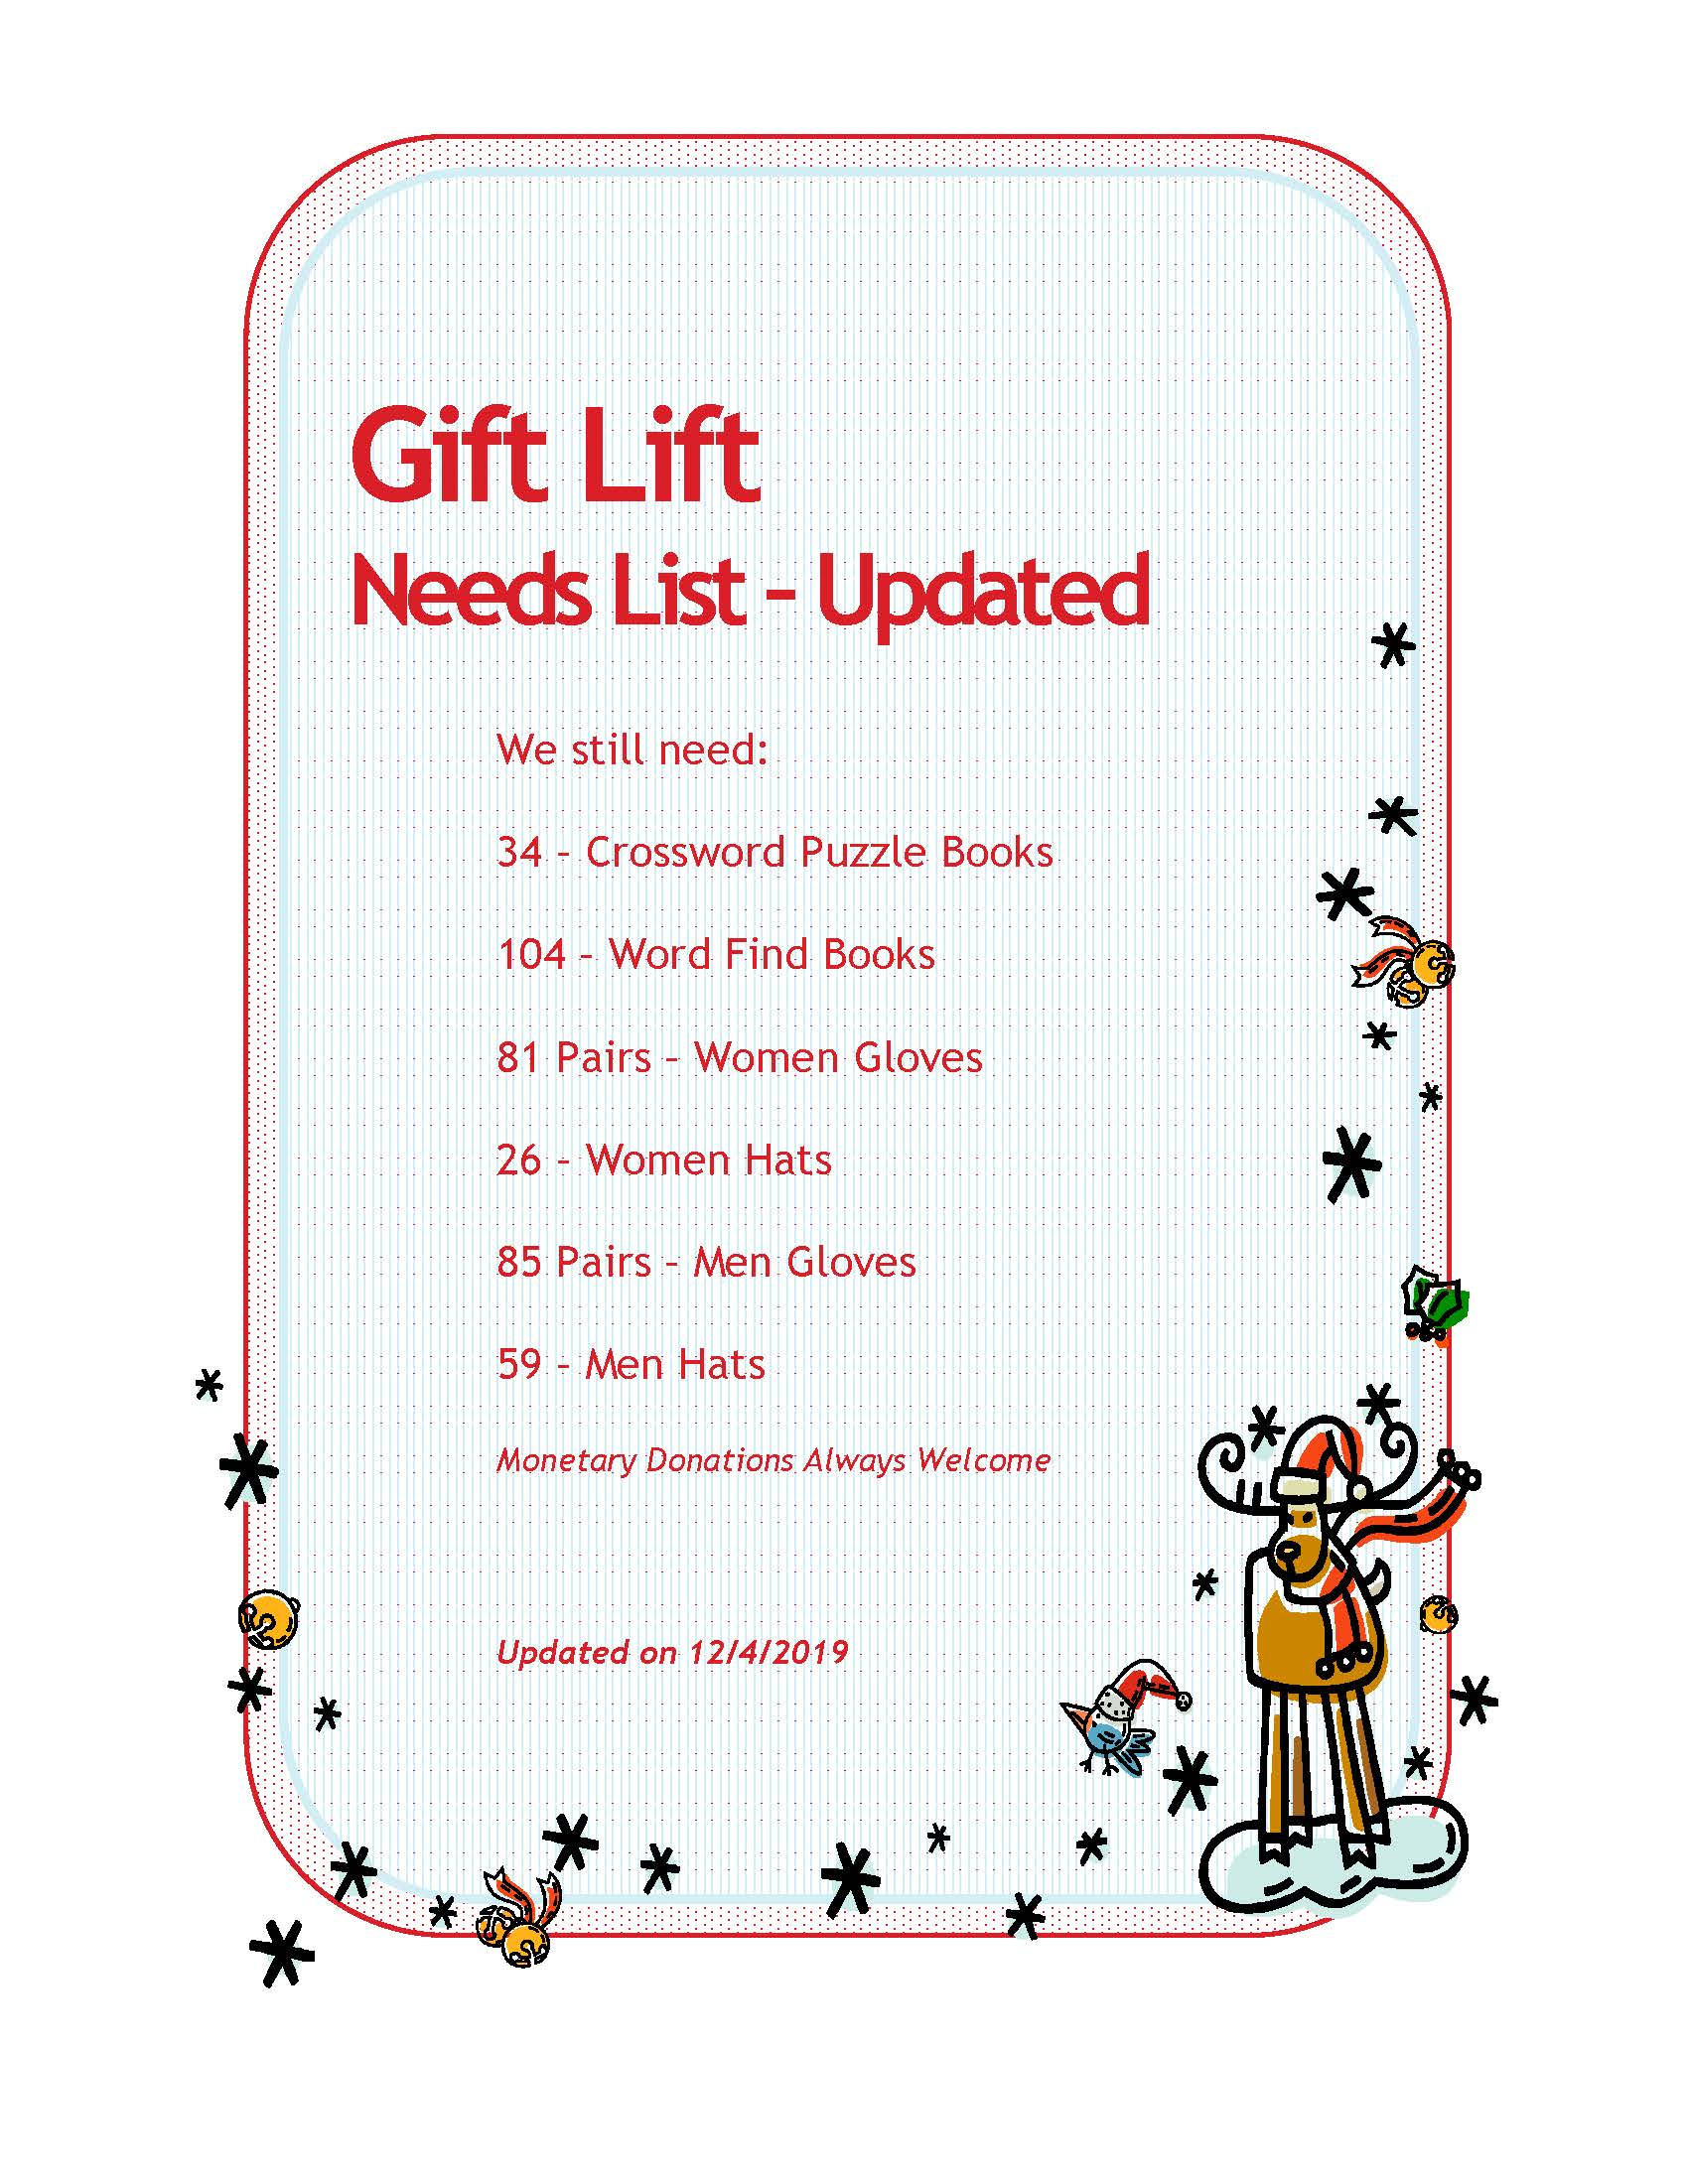 Gift Lift Need Listing - Updated 12/04/2019